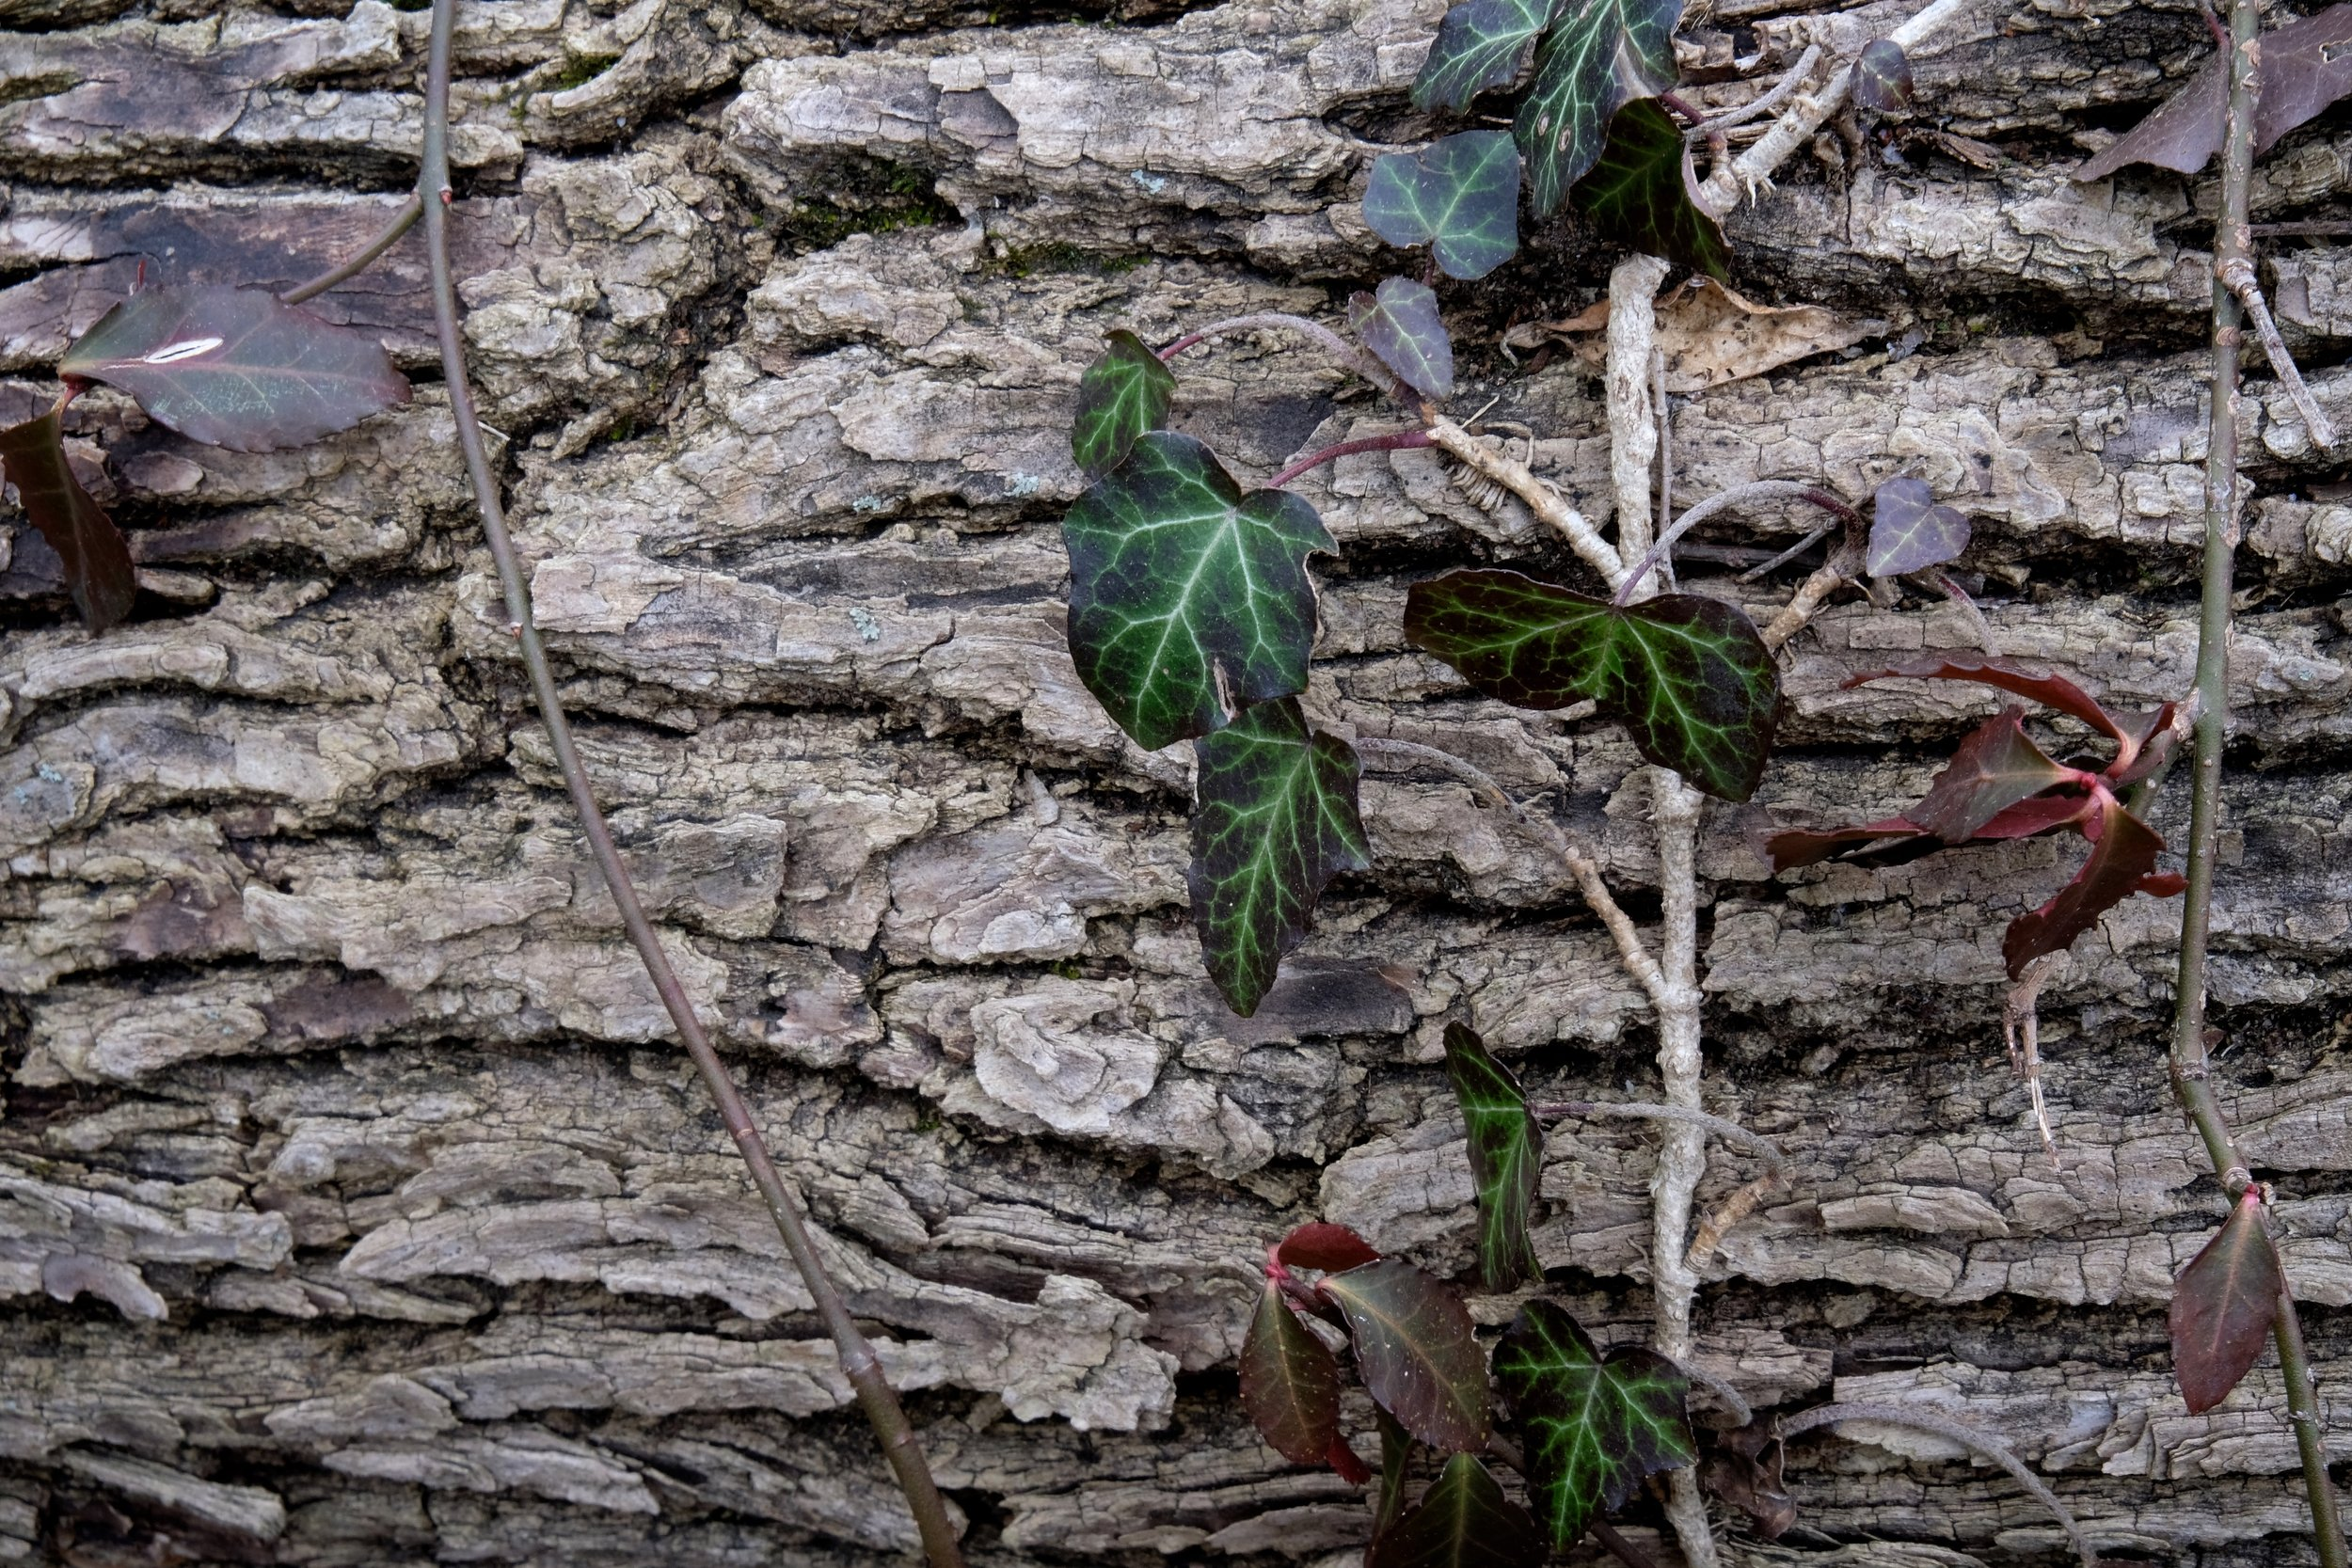 Ivy grows on a fallen tree near one of the many homeless encampments in Forest Park